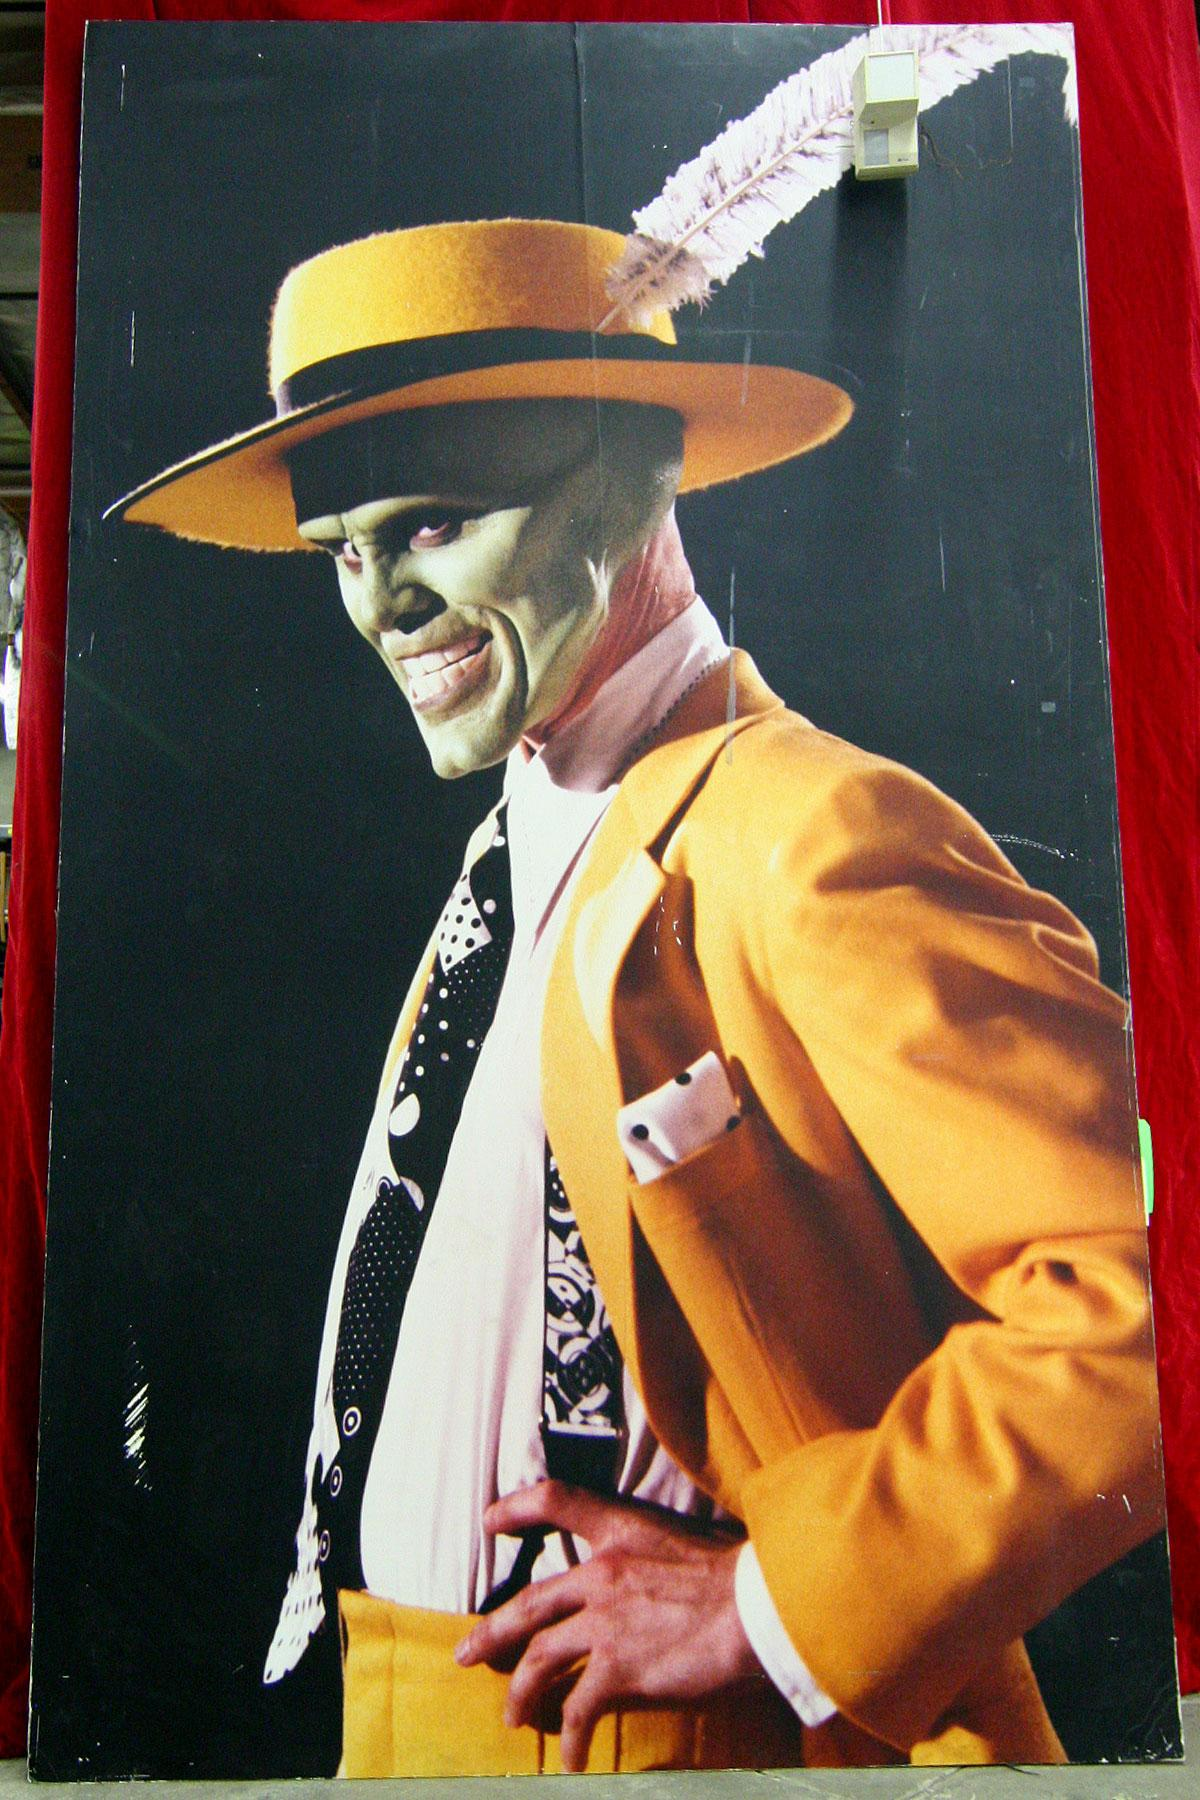 Full Movie Watch Full movie The Mask 1994 Online Free